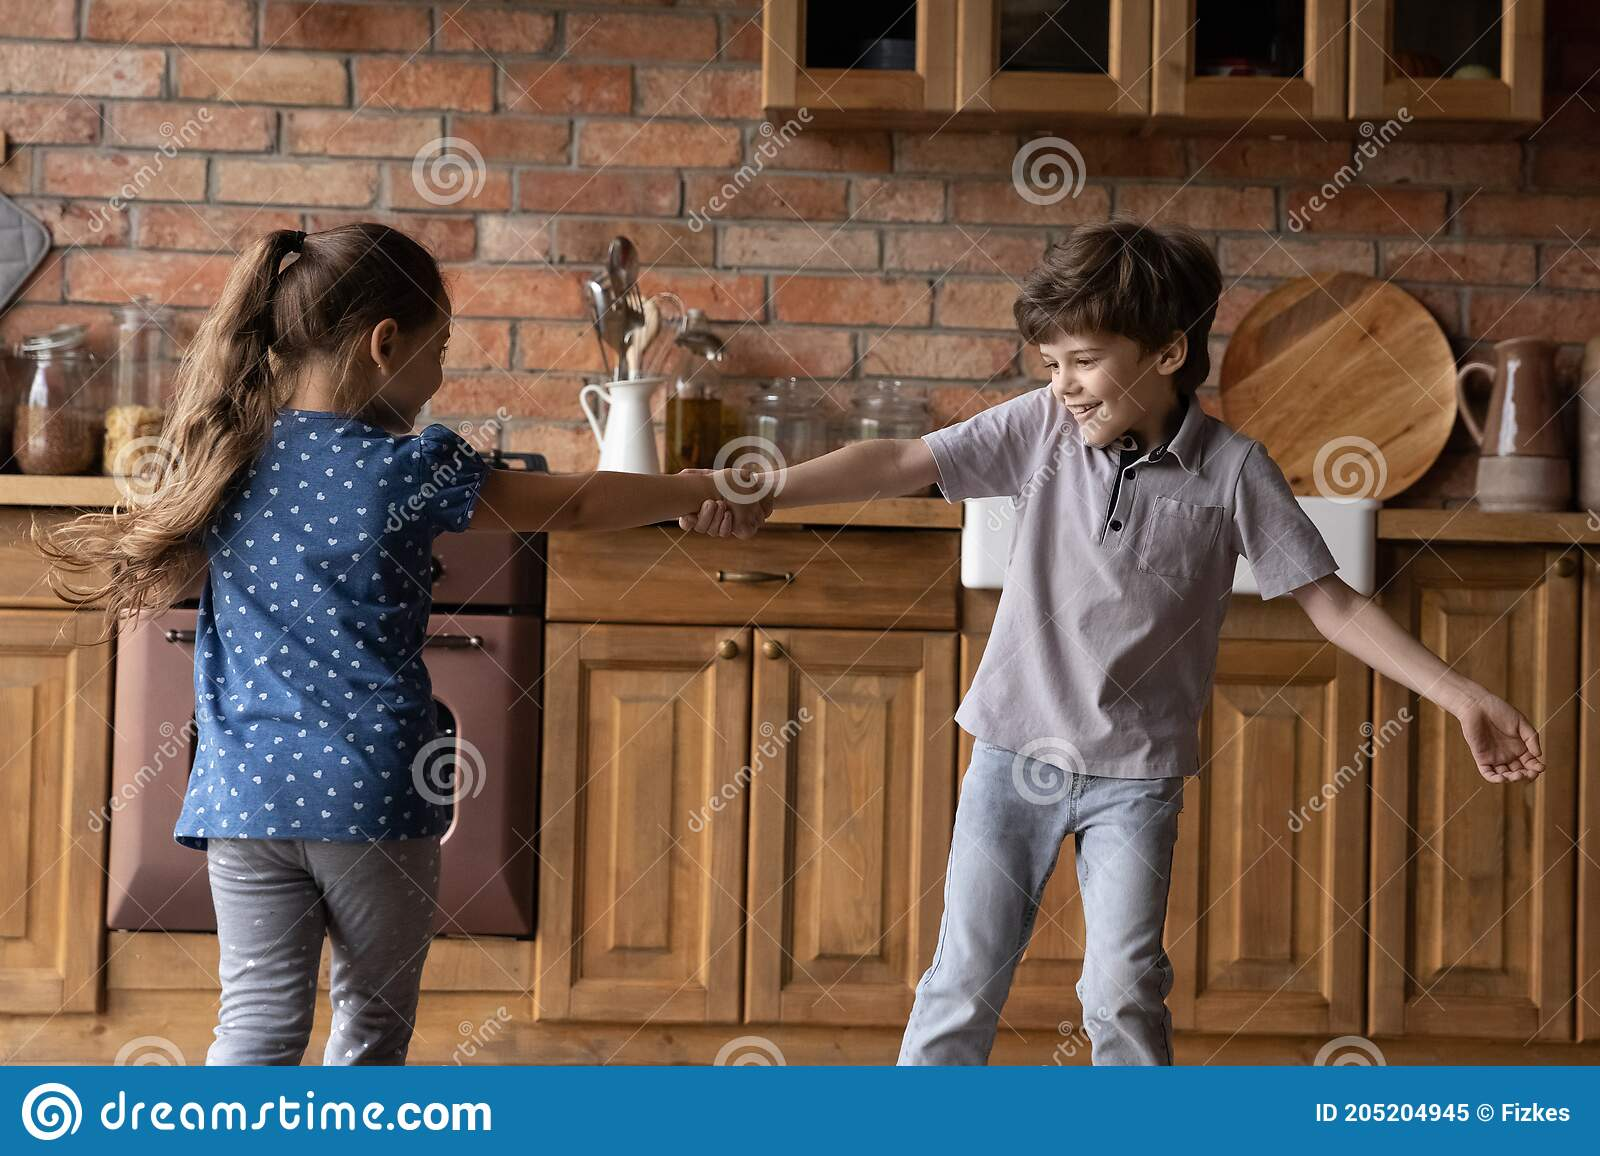 Kids Kitchen Running Photos Free Royalty Free Stock Photos From Dreamstime